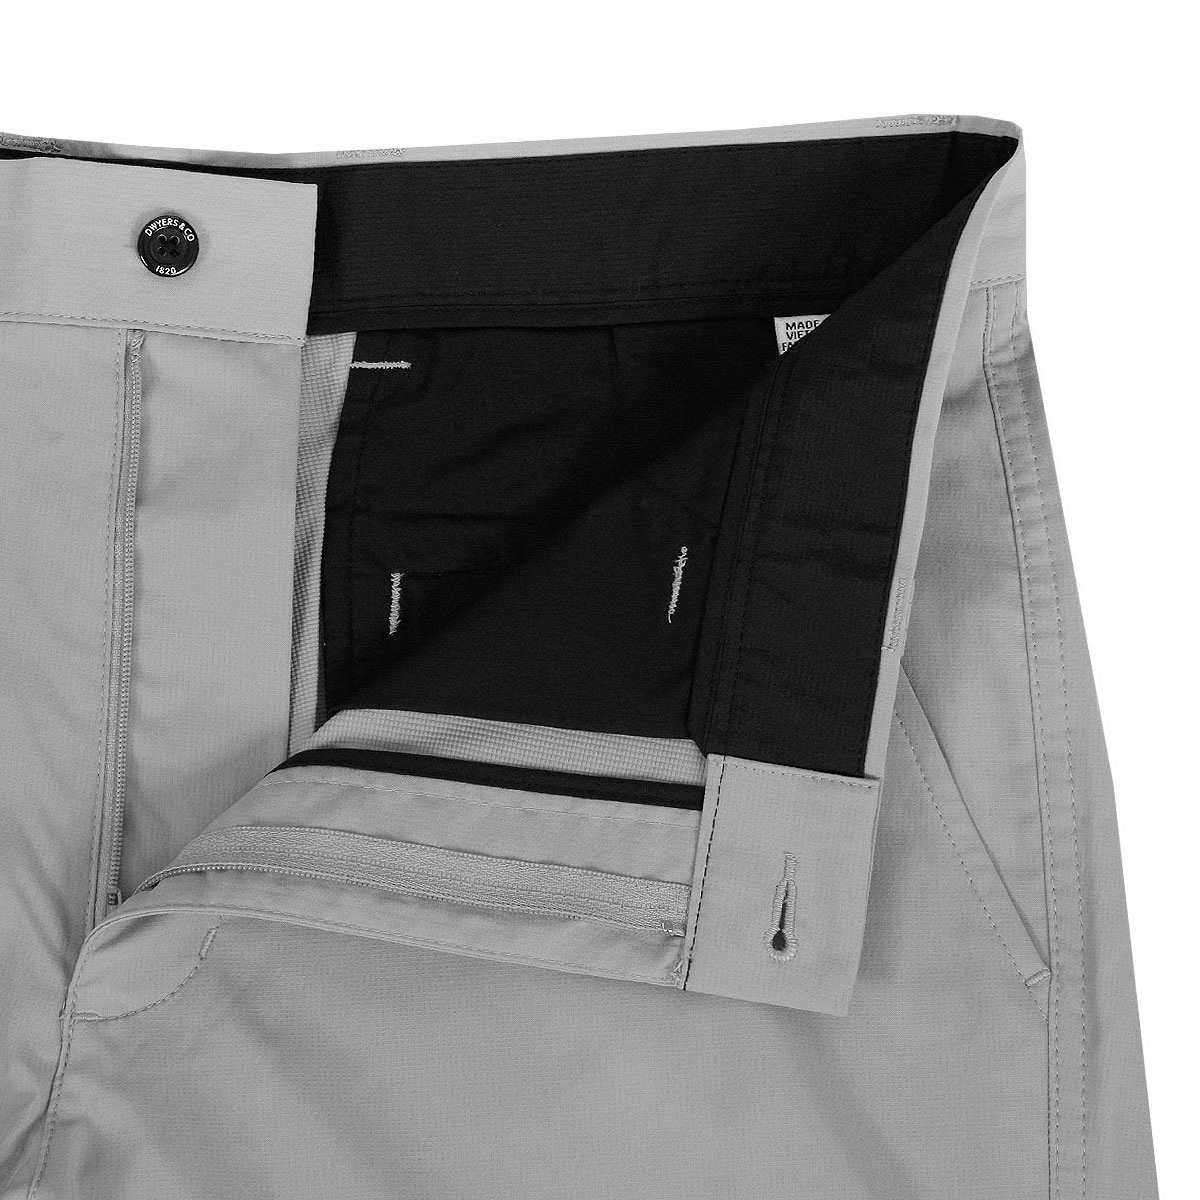 Dwyers-amp-Co-Mens-Matchplay-Stretch-Lightweight-Golf-Trousers-38-OFF-RRP thumbnail 37